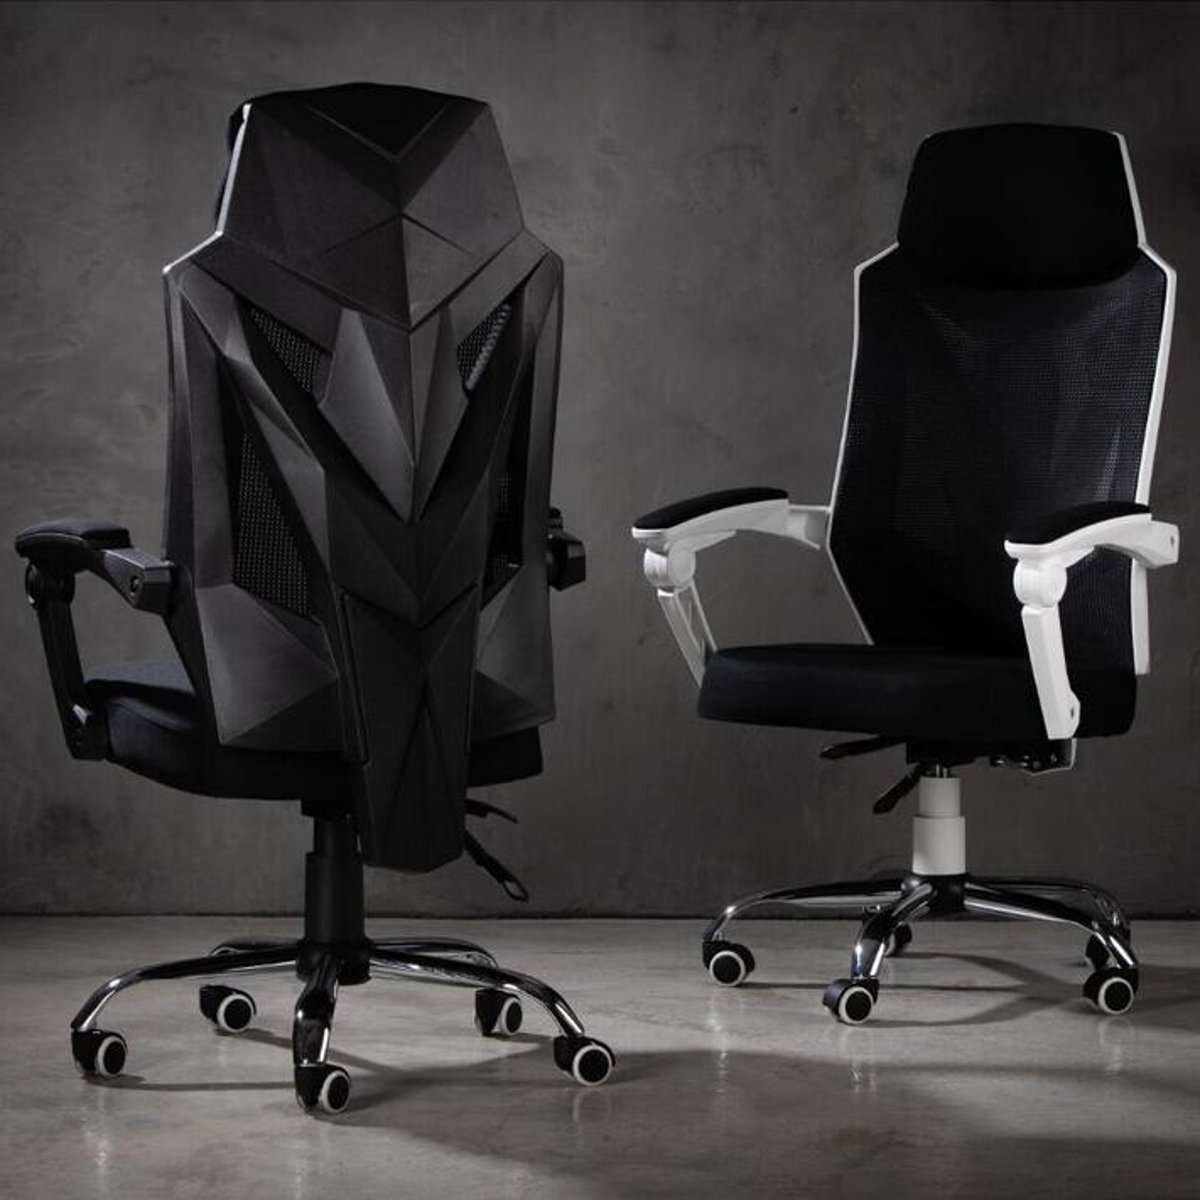 Adjustable Mesh Racing Gaming Chair High Back Ergonomic Office School Chair Recliner Seat With Footrest Computer Chair Furniture